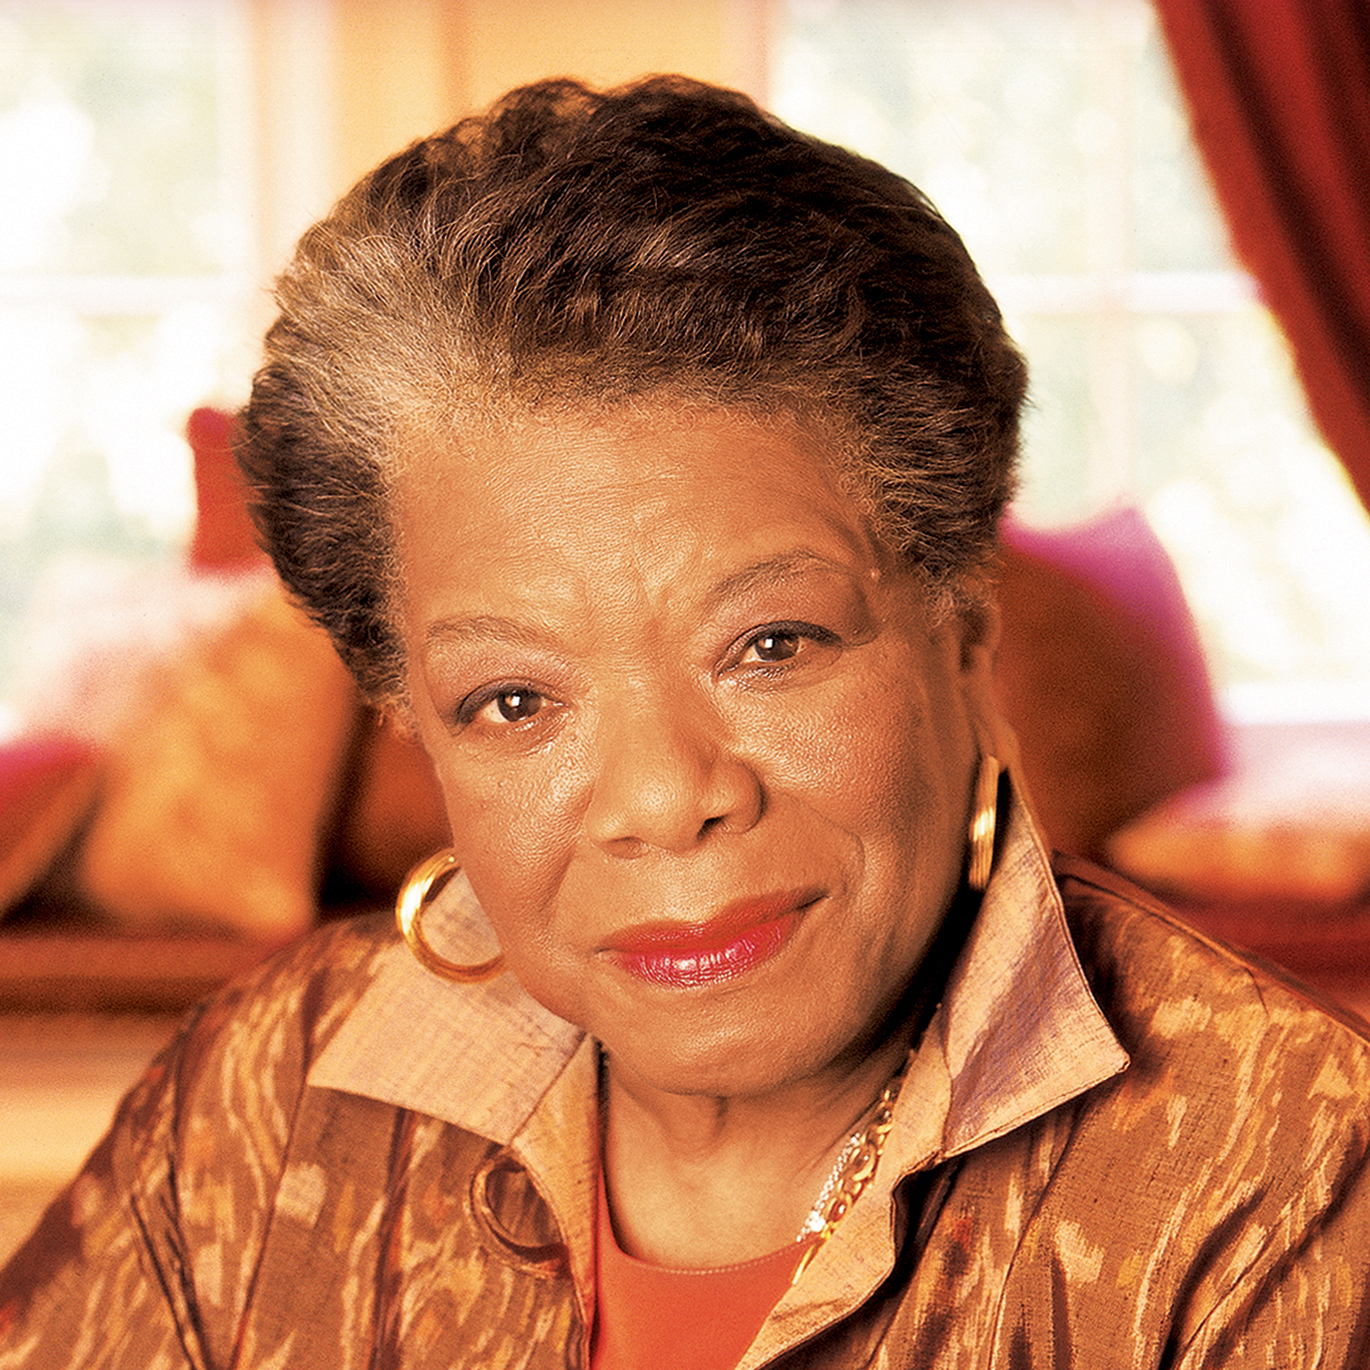 Maya Angelou is most famous for her poetry, autobiographies and essays, although her career has also included journalism, acting, dancing, screenplay writing and more. Her latest book is called Mom & Me & Mom.